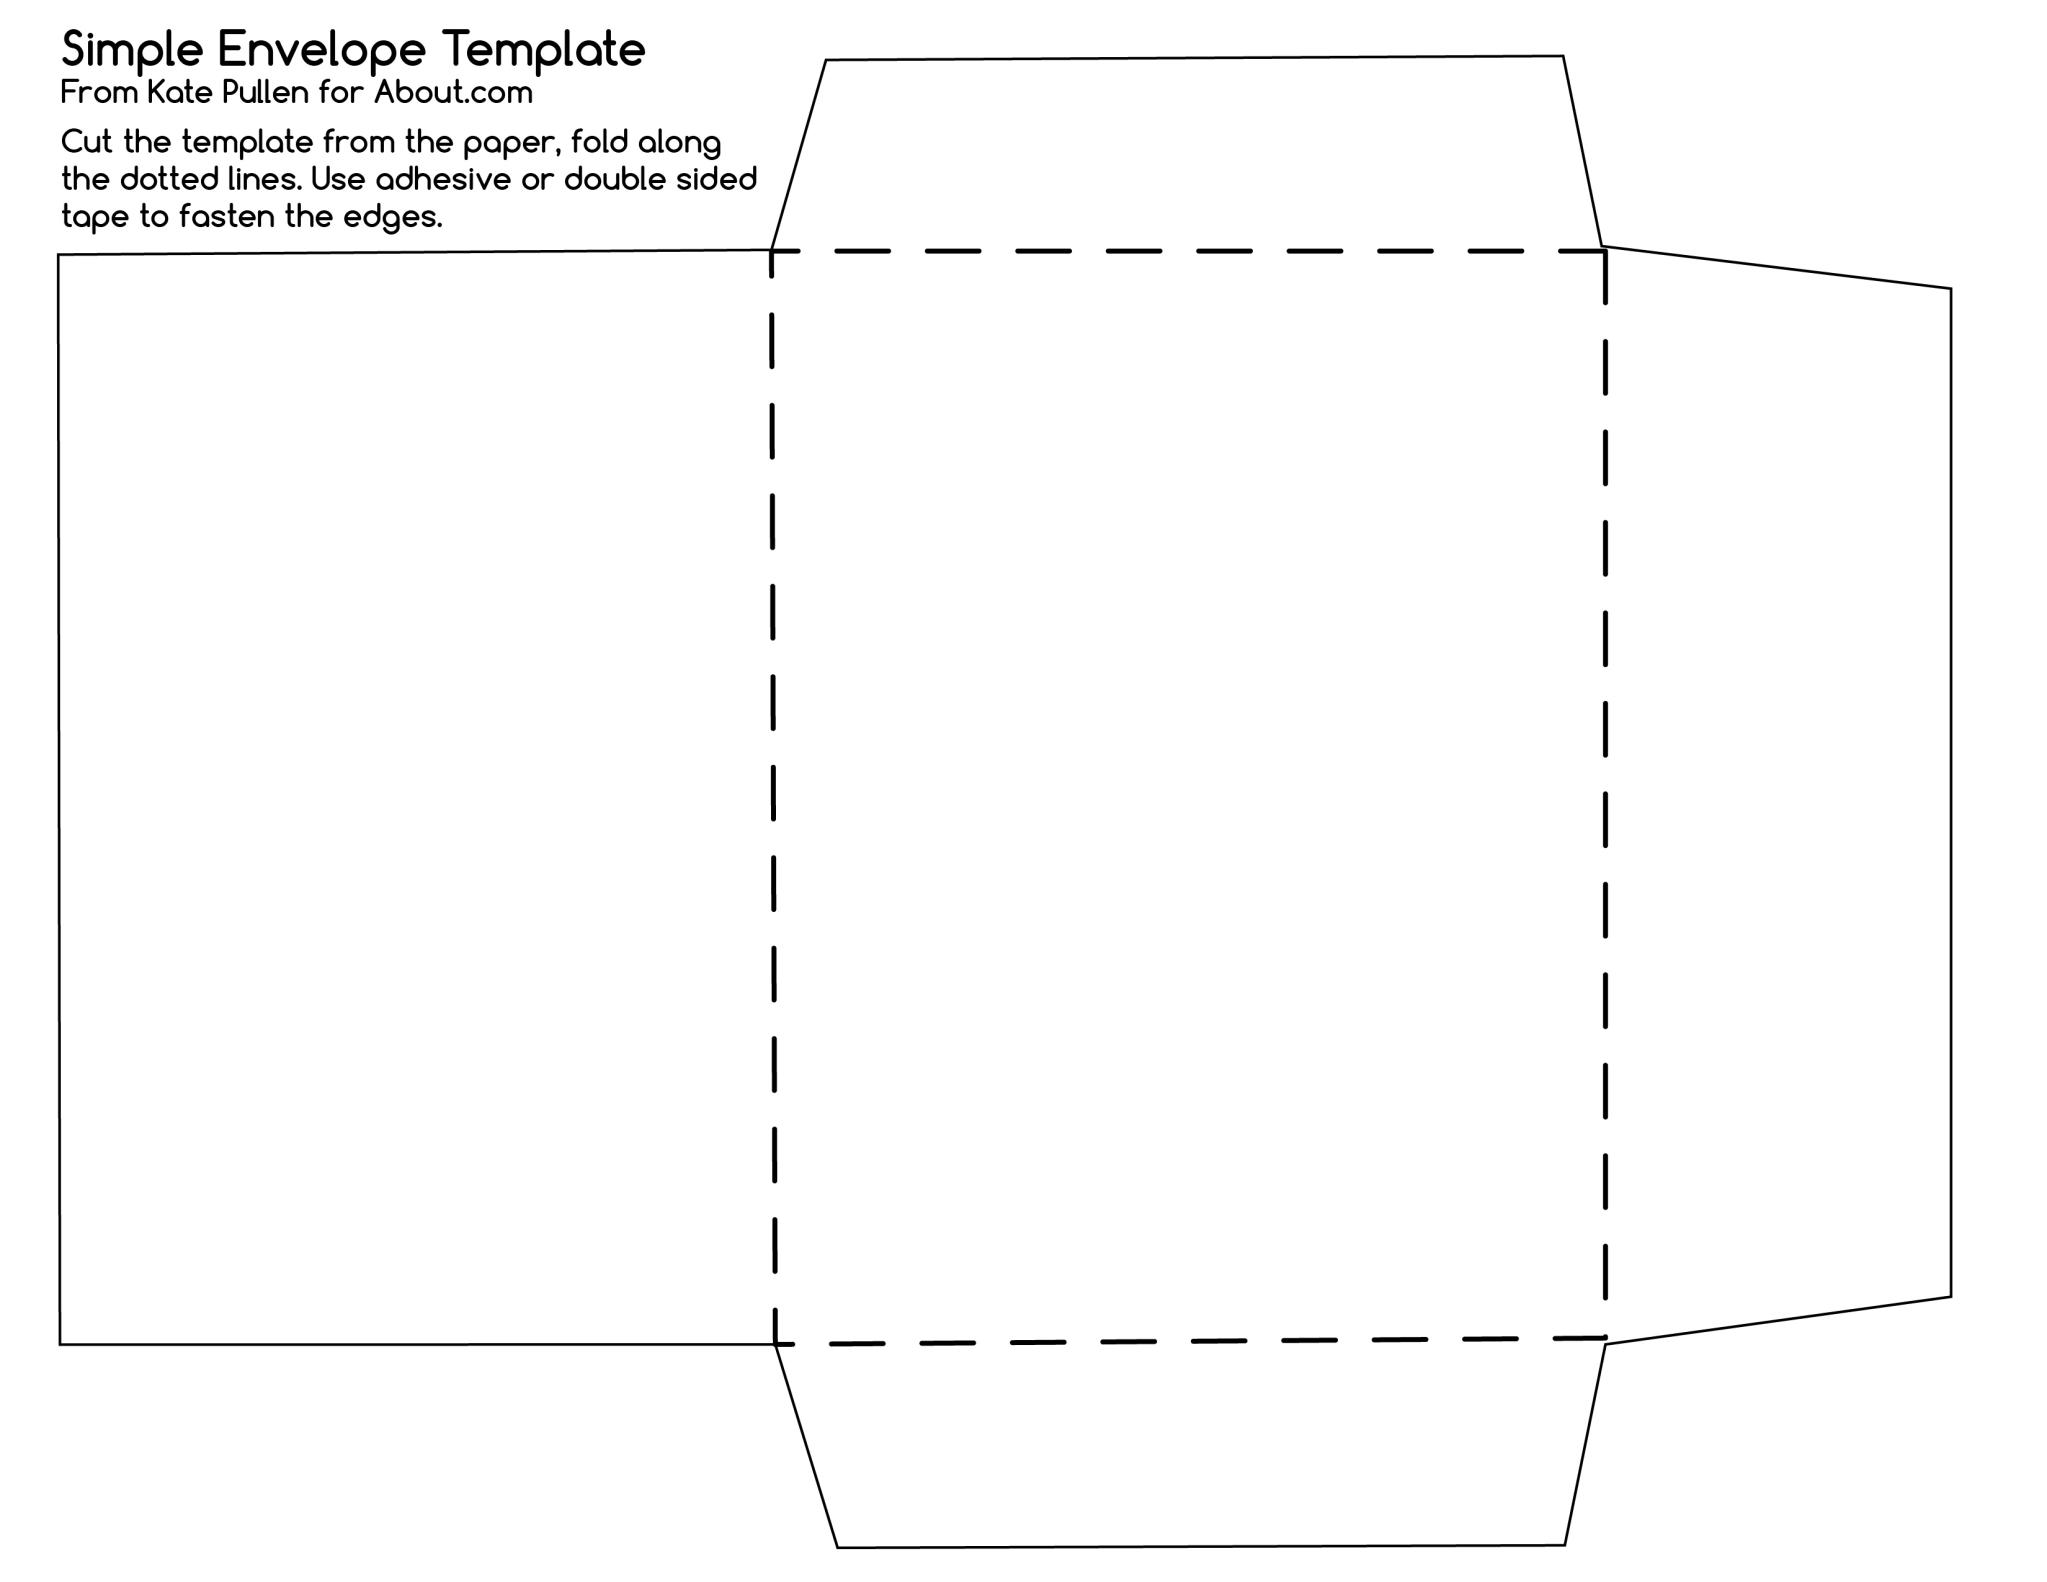 How to Create a Unique Envelop Template RoiInvestingcom n46Xg4cc